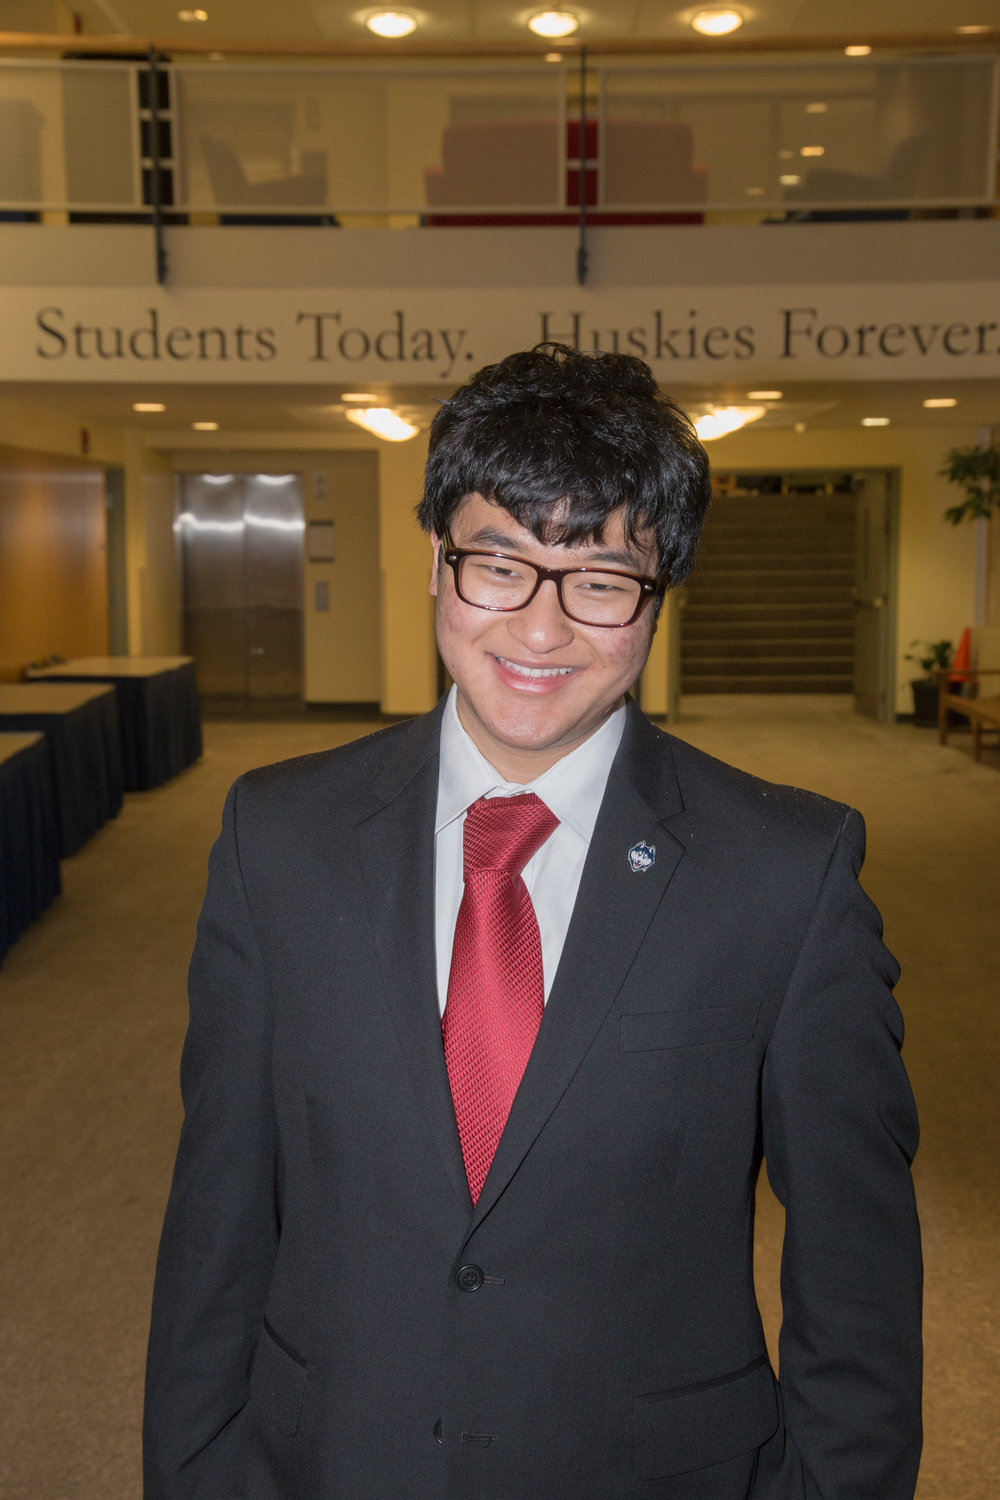 USG speaker George P. Wang is running for a board of trustees seat with a platform that focuses on representing students' interests in a difficult financial time, increasing understanding of the board's work and reaching out directly to student groups. (Courtesy/George P. Wang)